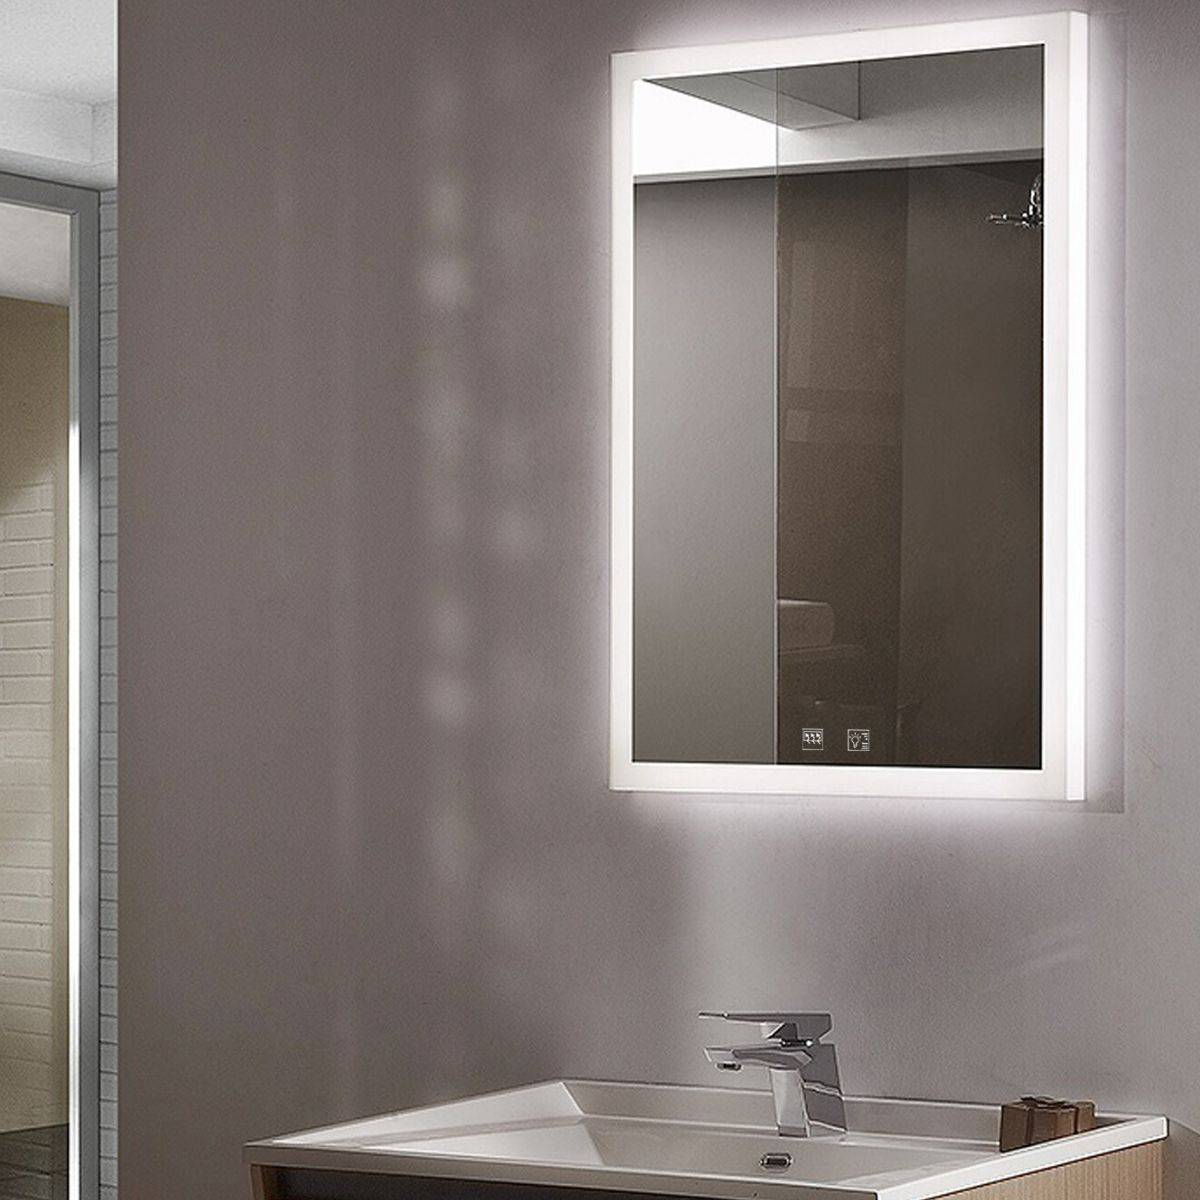 Simple Lighting LED Mirror, Colour Adjustable With Demister